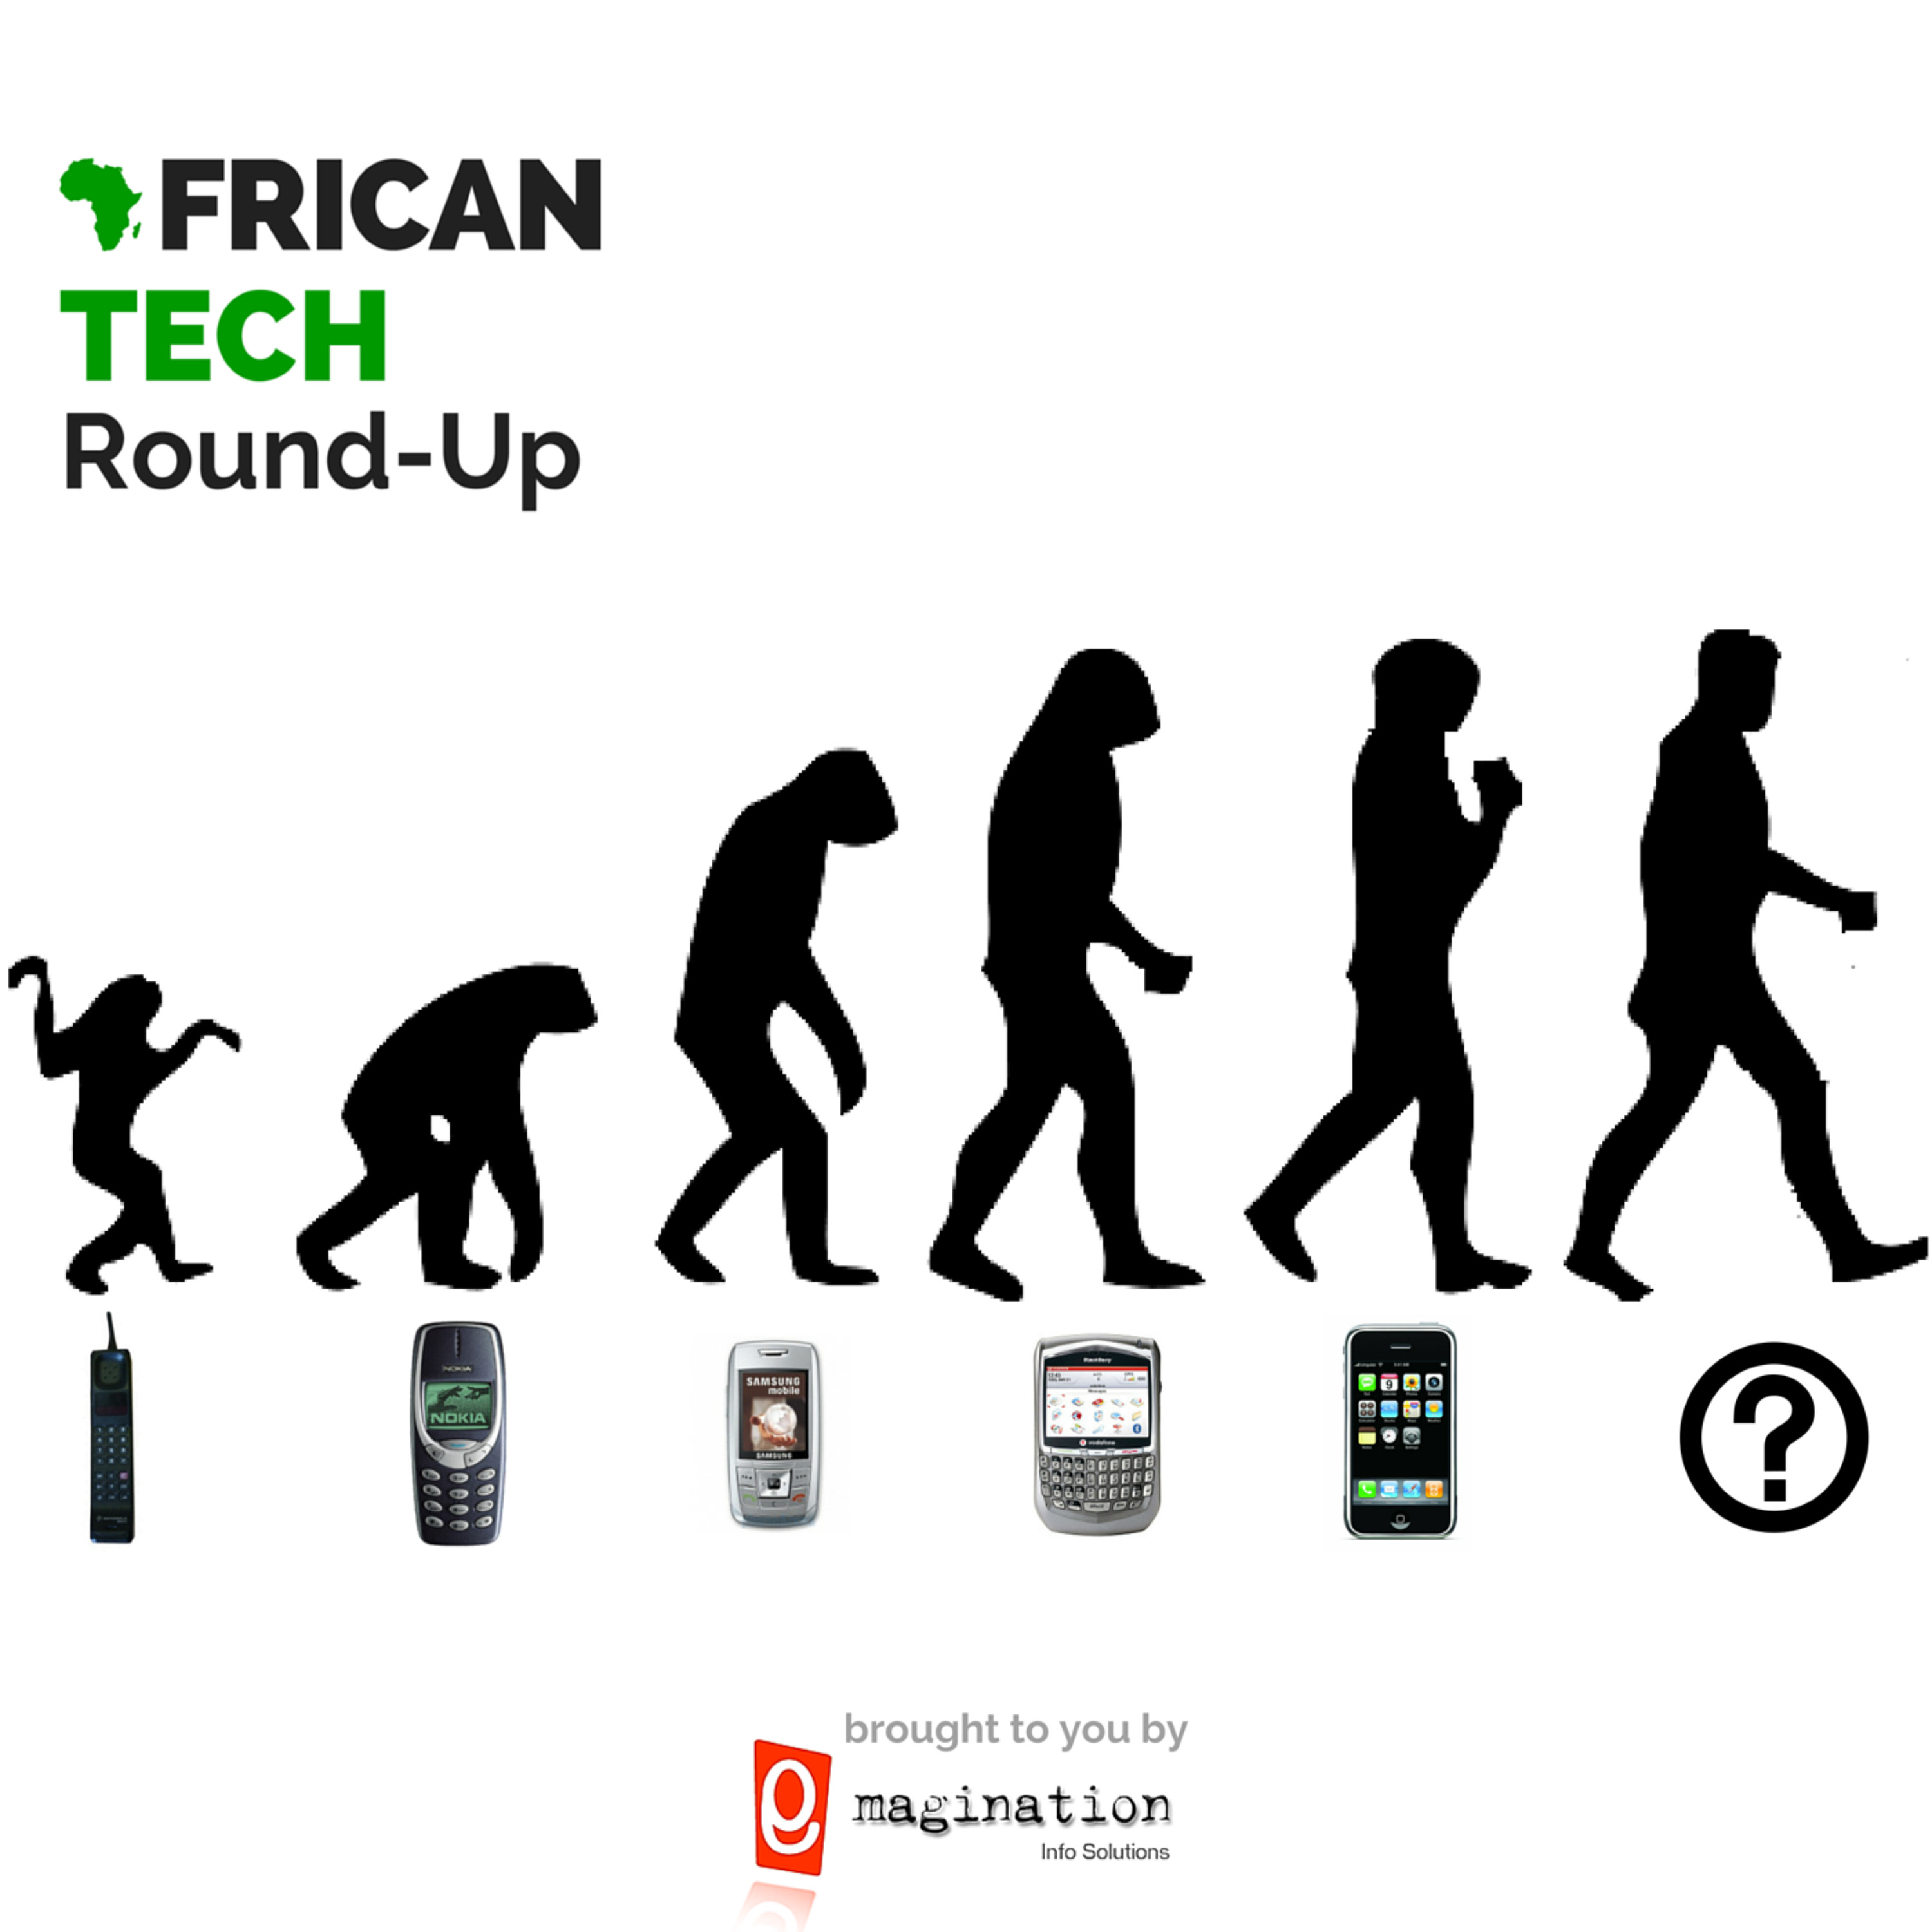 Evolution Of Mobile Phones, What's Next?